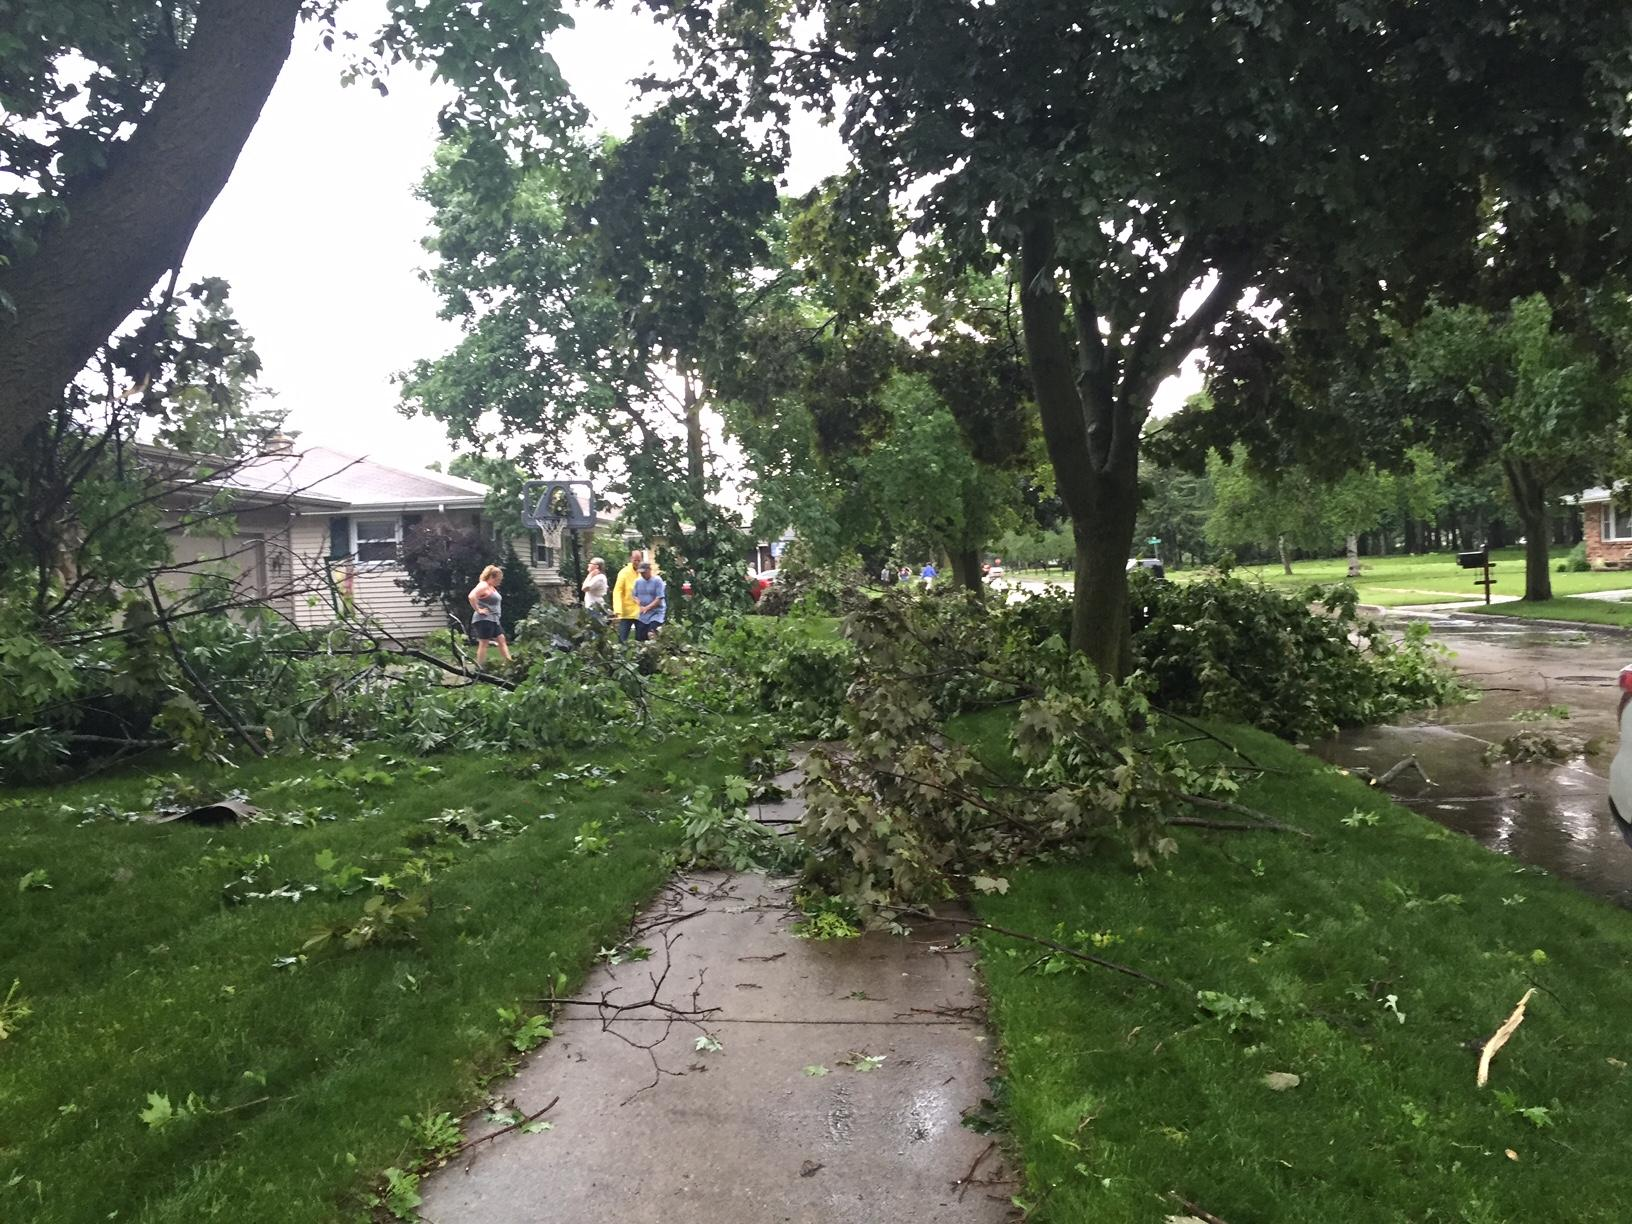 Trees down on the sidewalk on Fidelis Street near College Avenue in Appleton, June 14, 2017. (WLUK/Alex Ronallo)